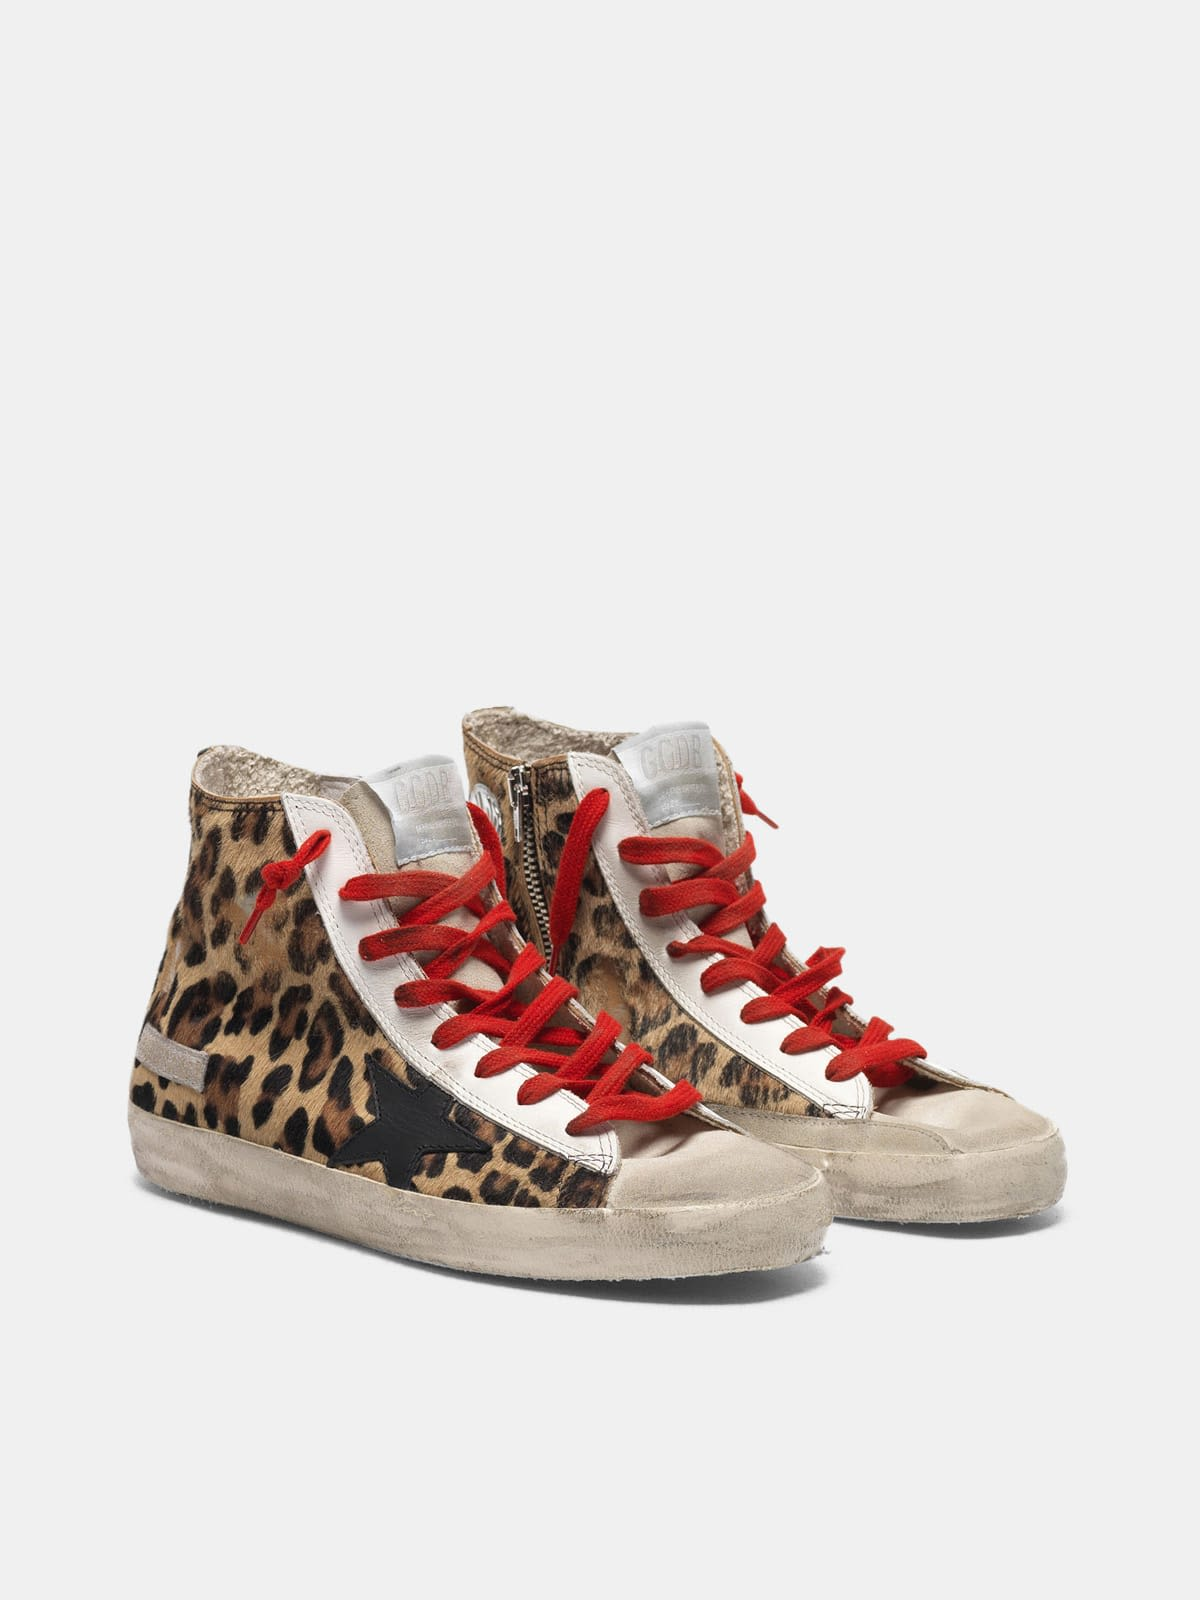 Francy sneakers in leopard-print pony skin